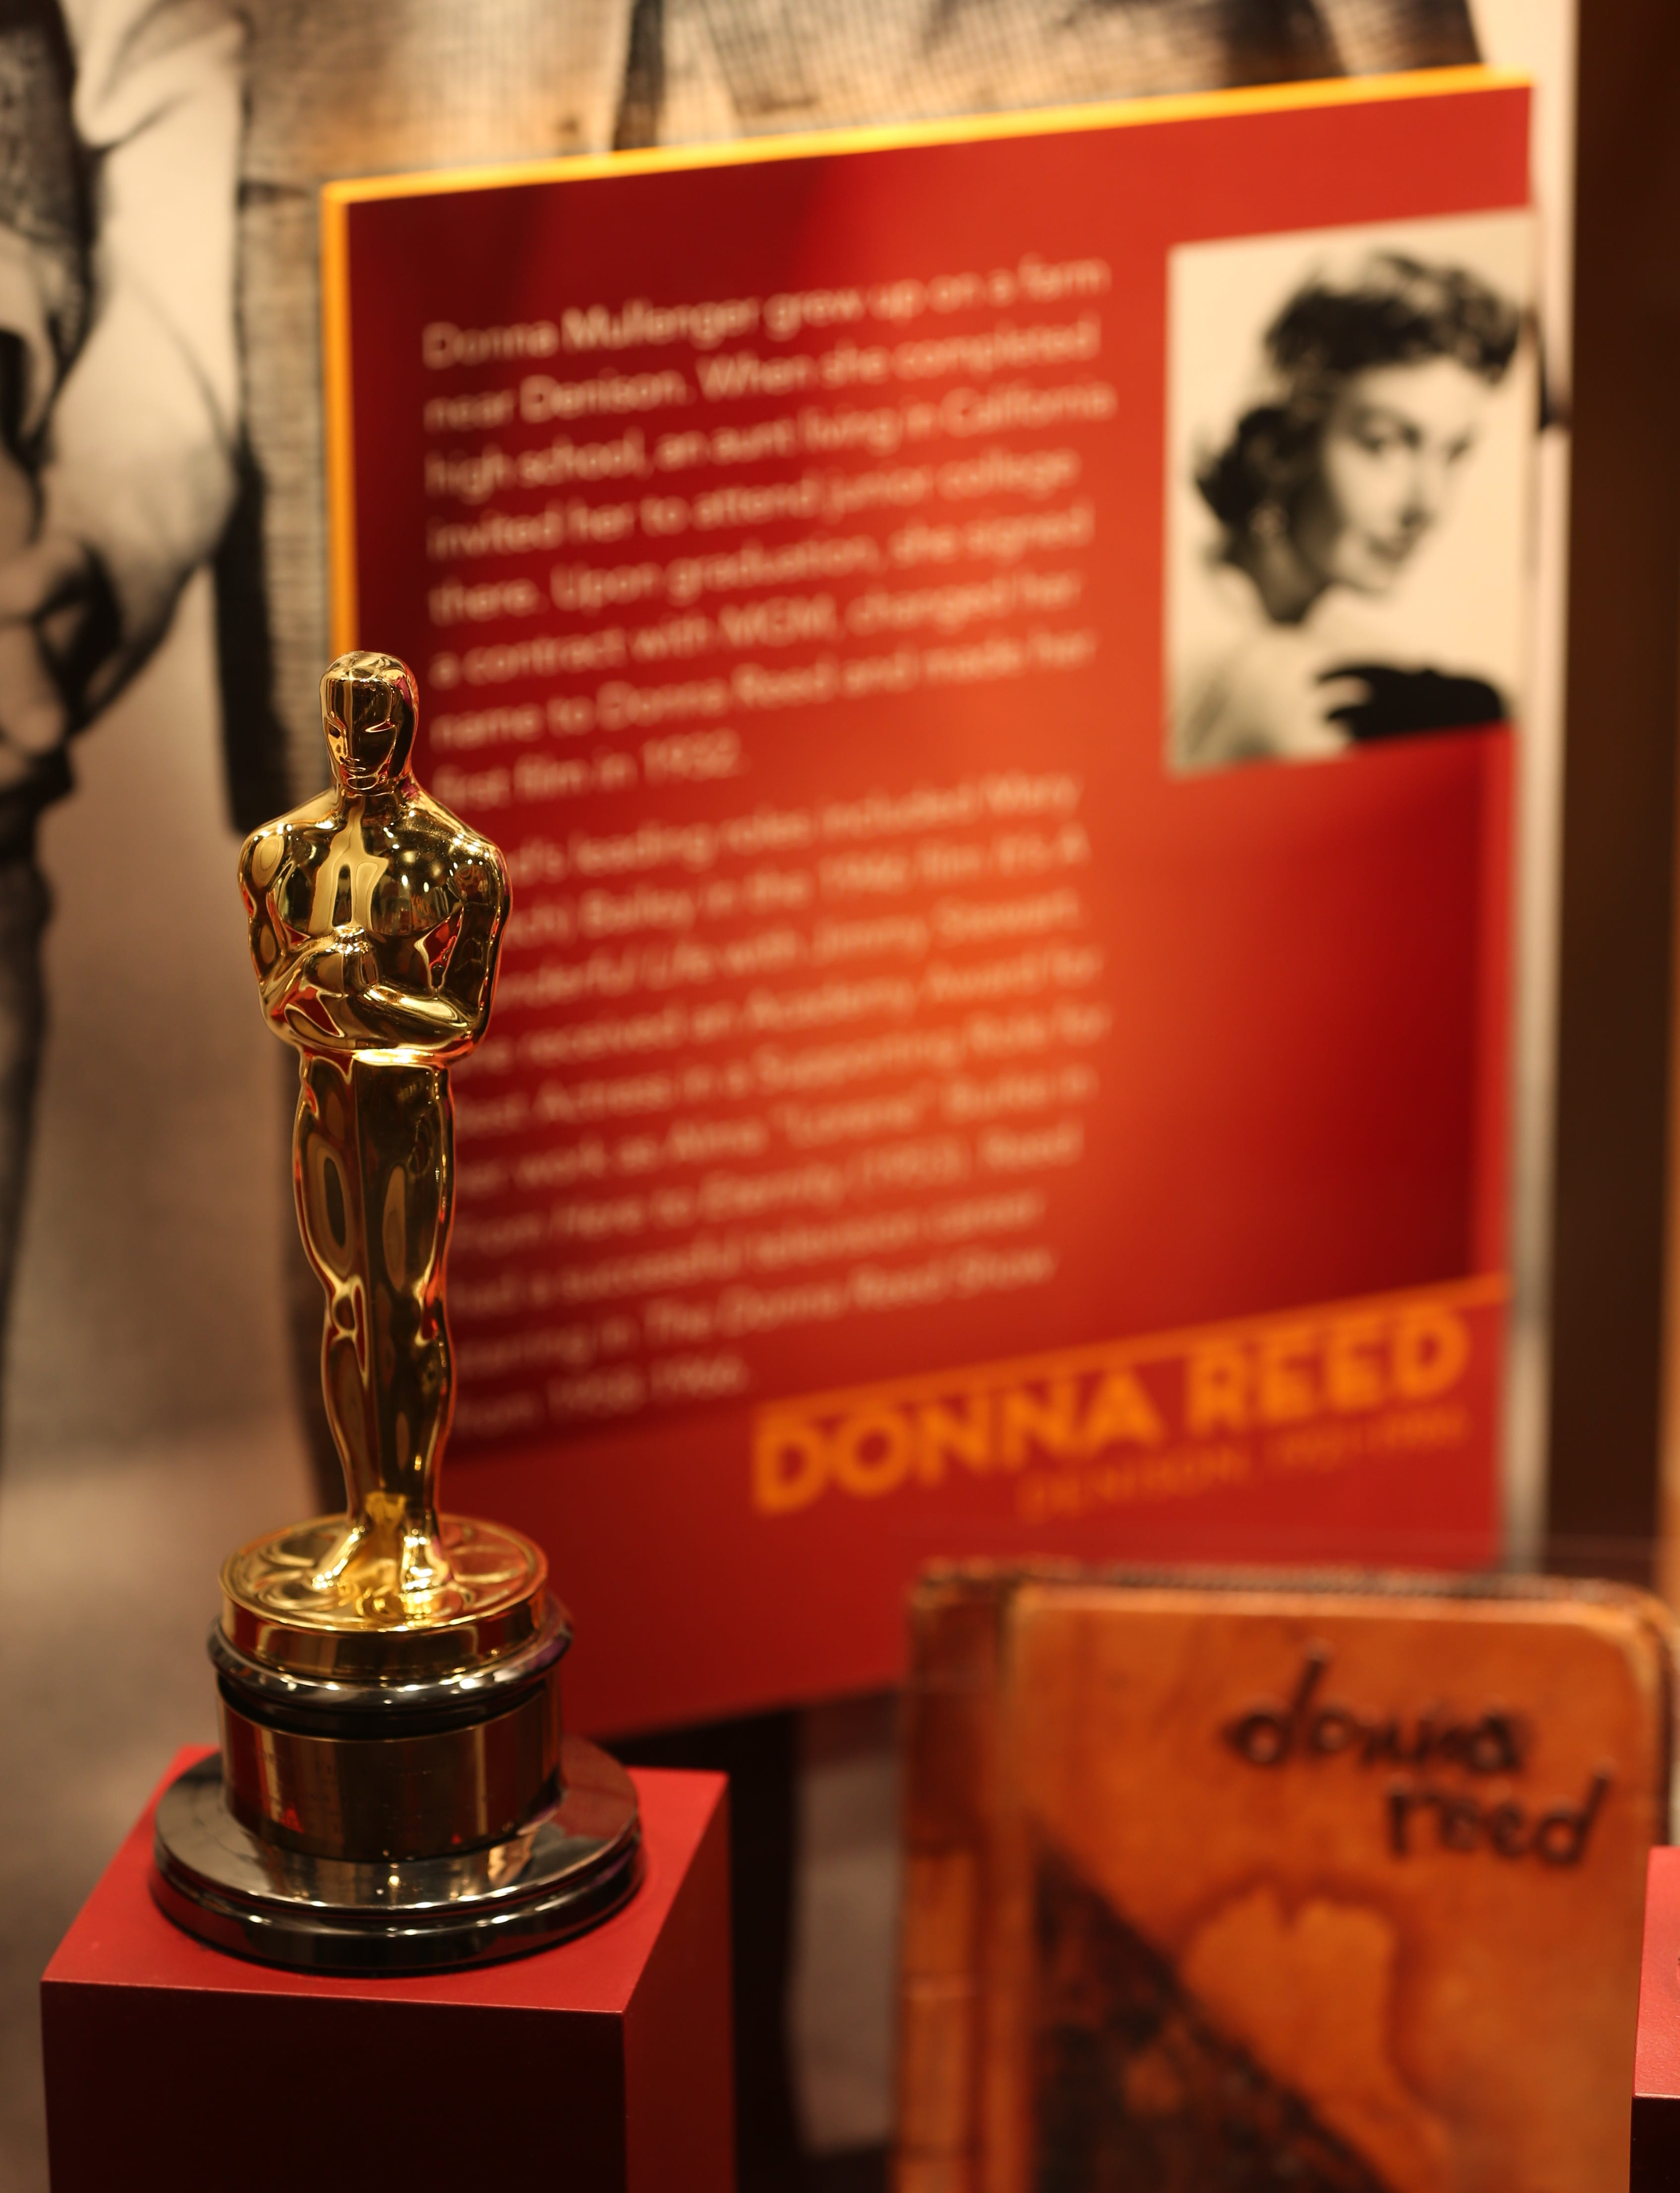 Academy Award won by Iowans Donna Reed seen at the Hollywood in the Heartland exhibit at the State Historical Museum on Thursday, June 26, 2014, in Des Moines, Iowa.